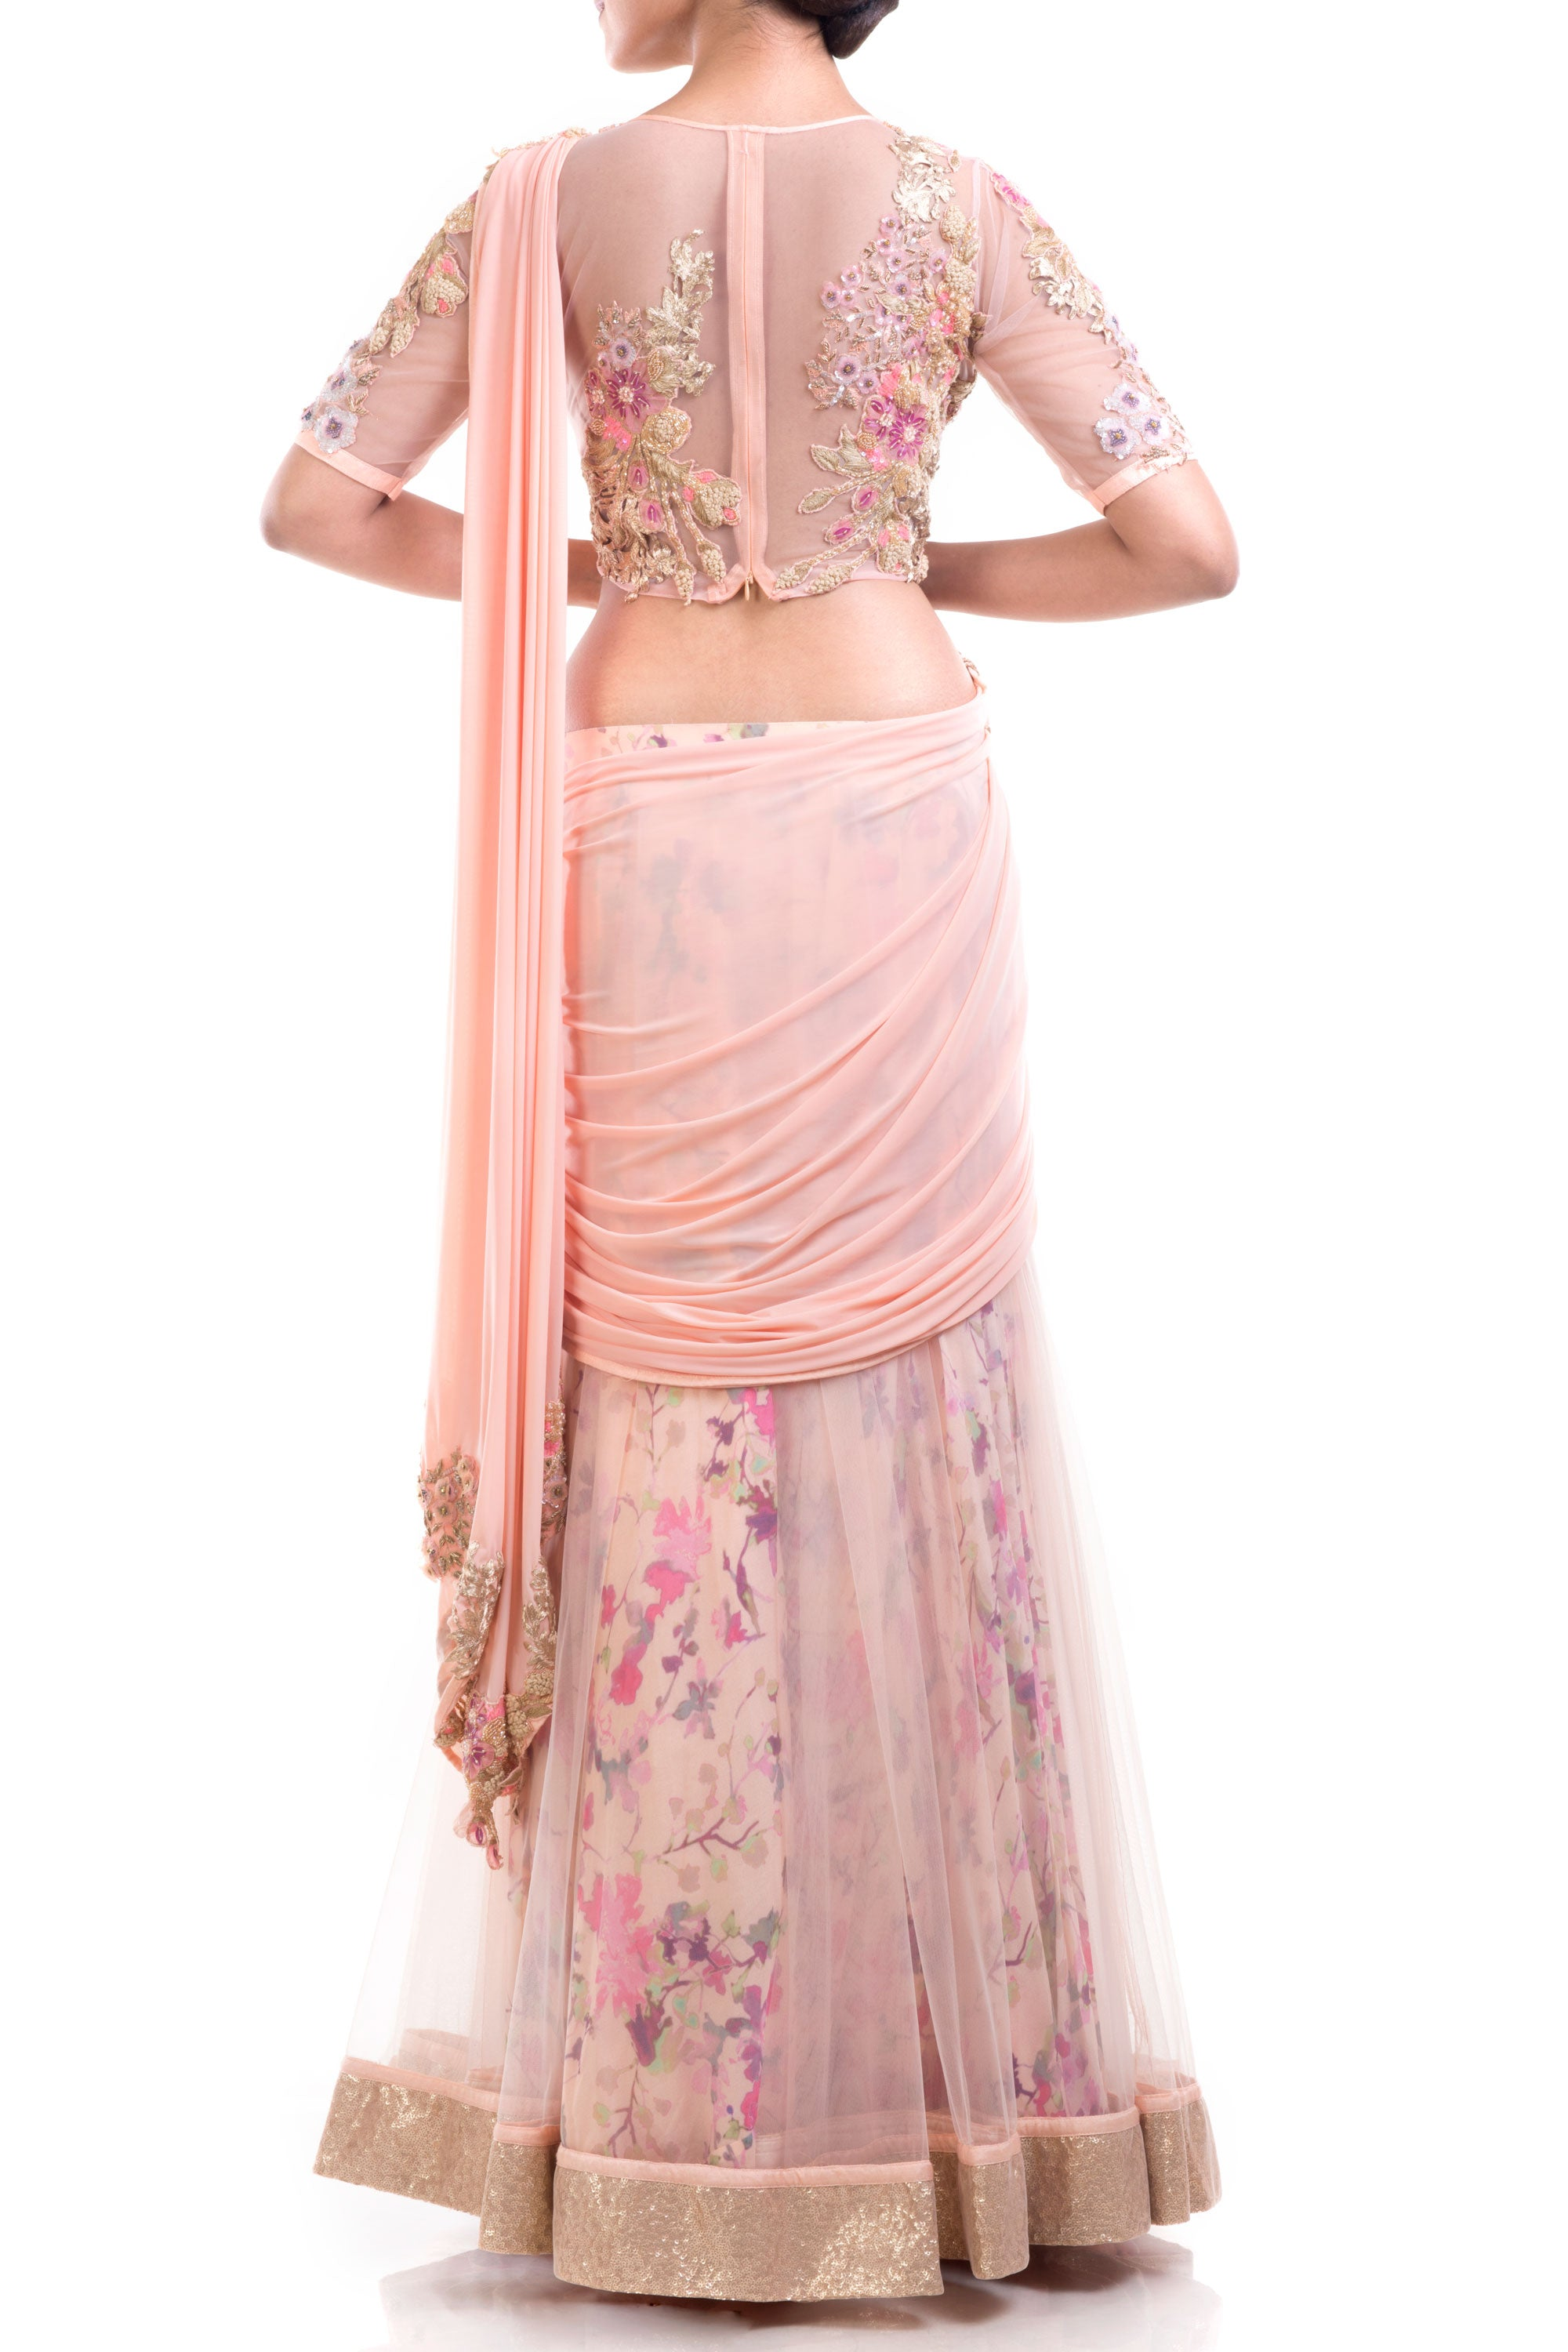 Gorgeous Draped Lehenga Gown Pattern With Print & Intricate Embroidery Detailing Back